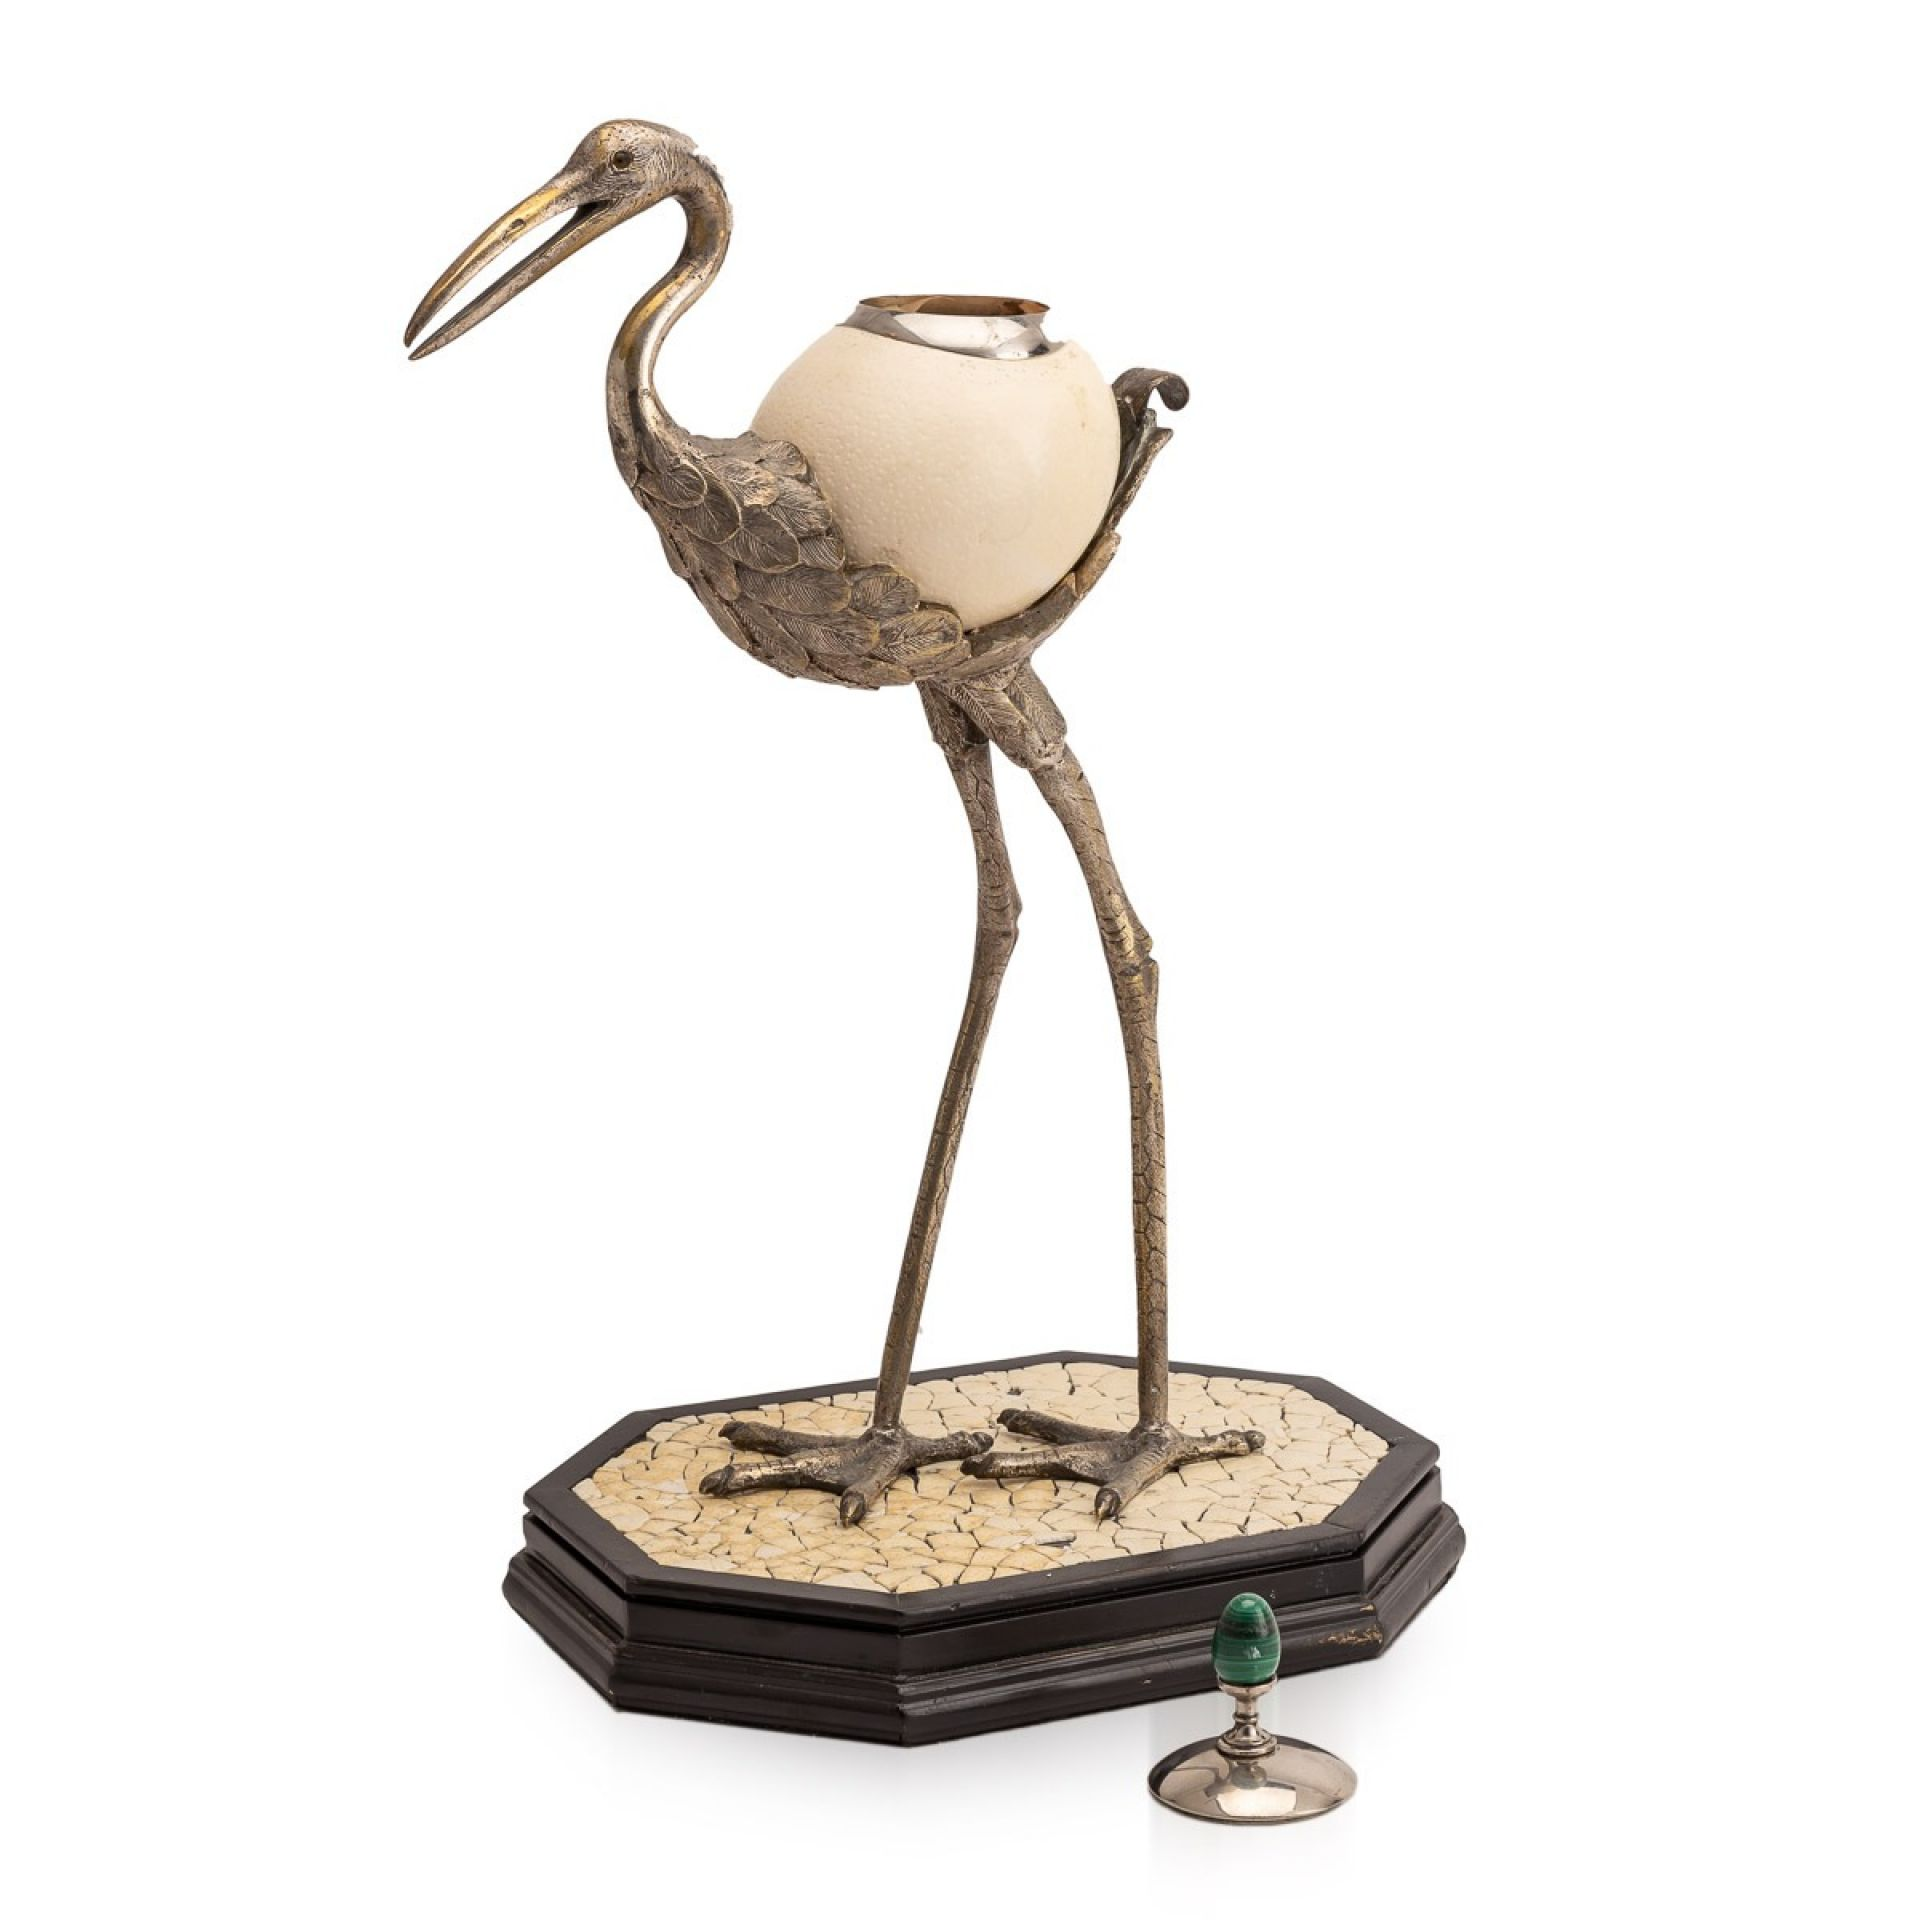 ANTHONY REDMILE OSTRICH EGG BOX MOUNTED ON SILVER PLATED CRANE, LONDON c.1970